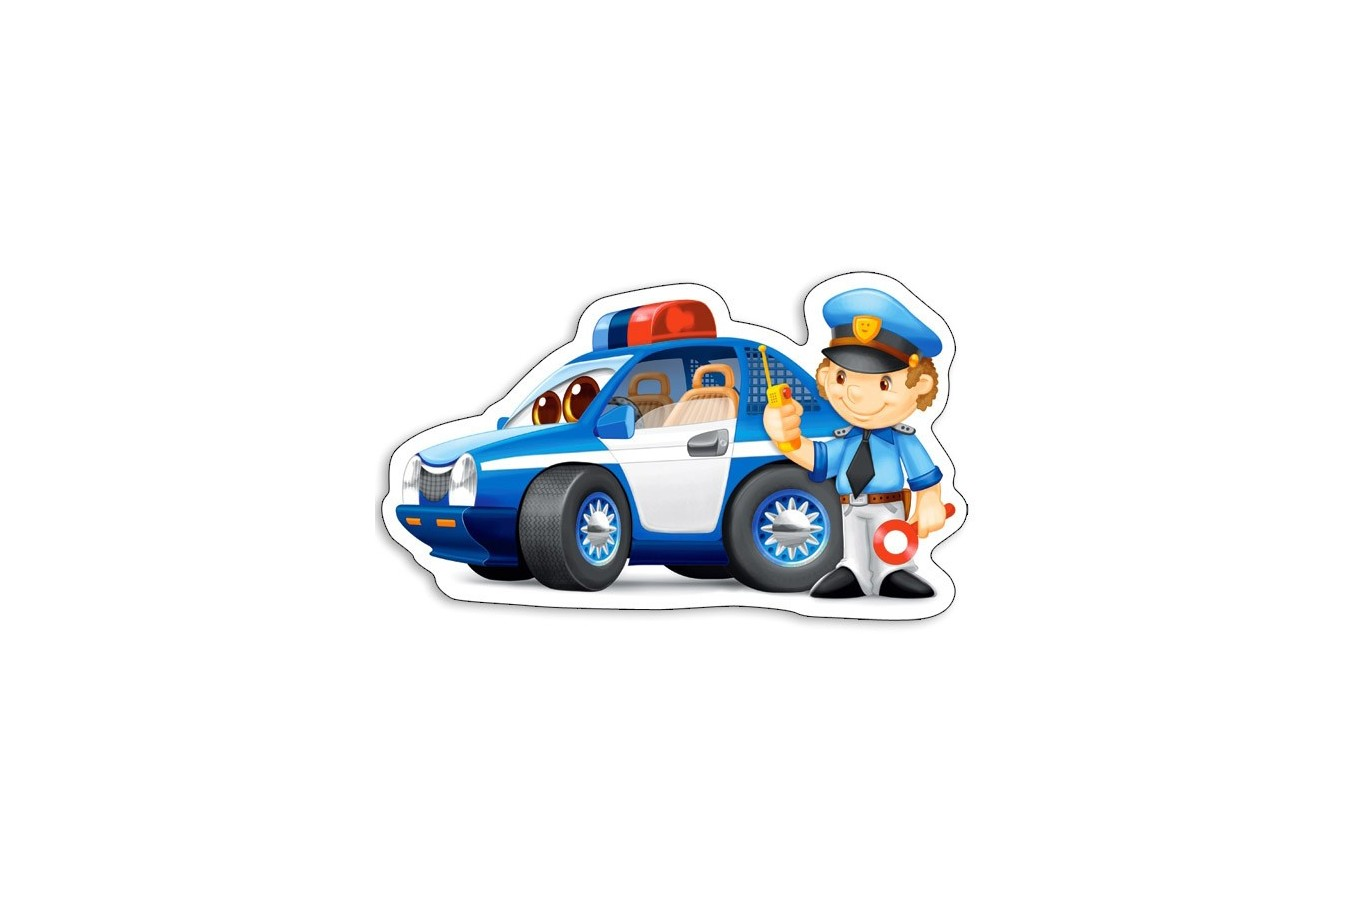 Puzzle Castorland 4 in 1 - Rescue Services, 4/5/6/7 Piese